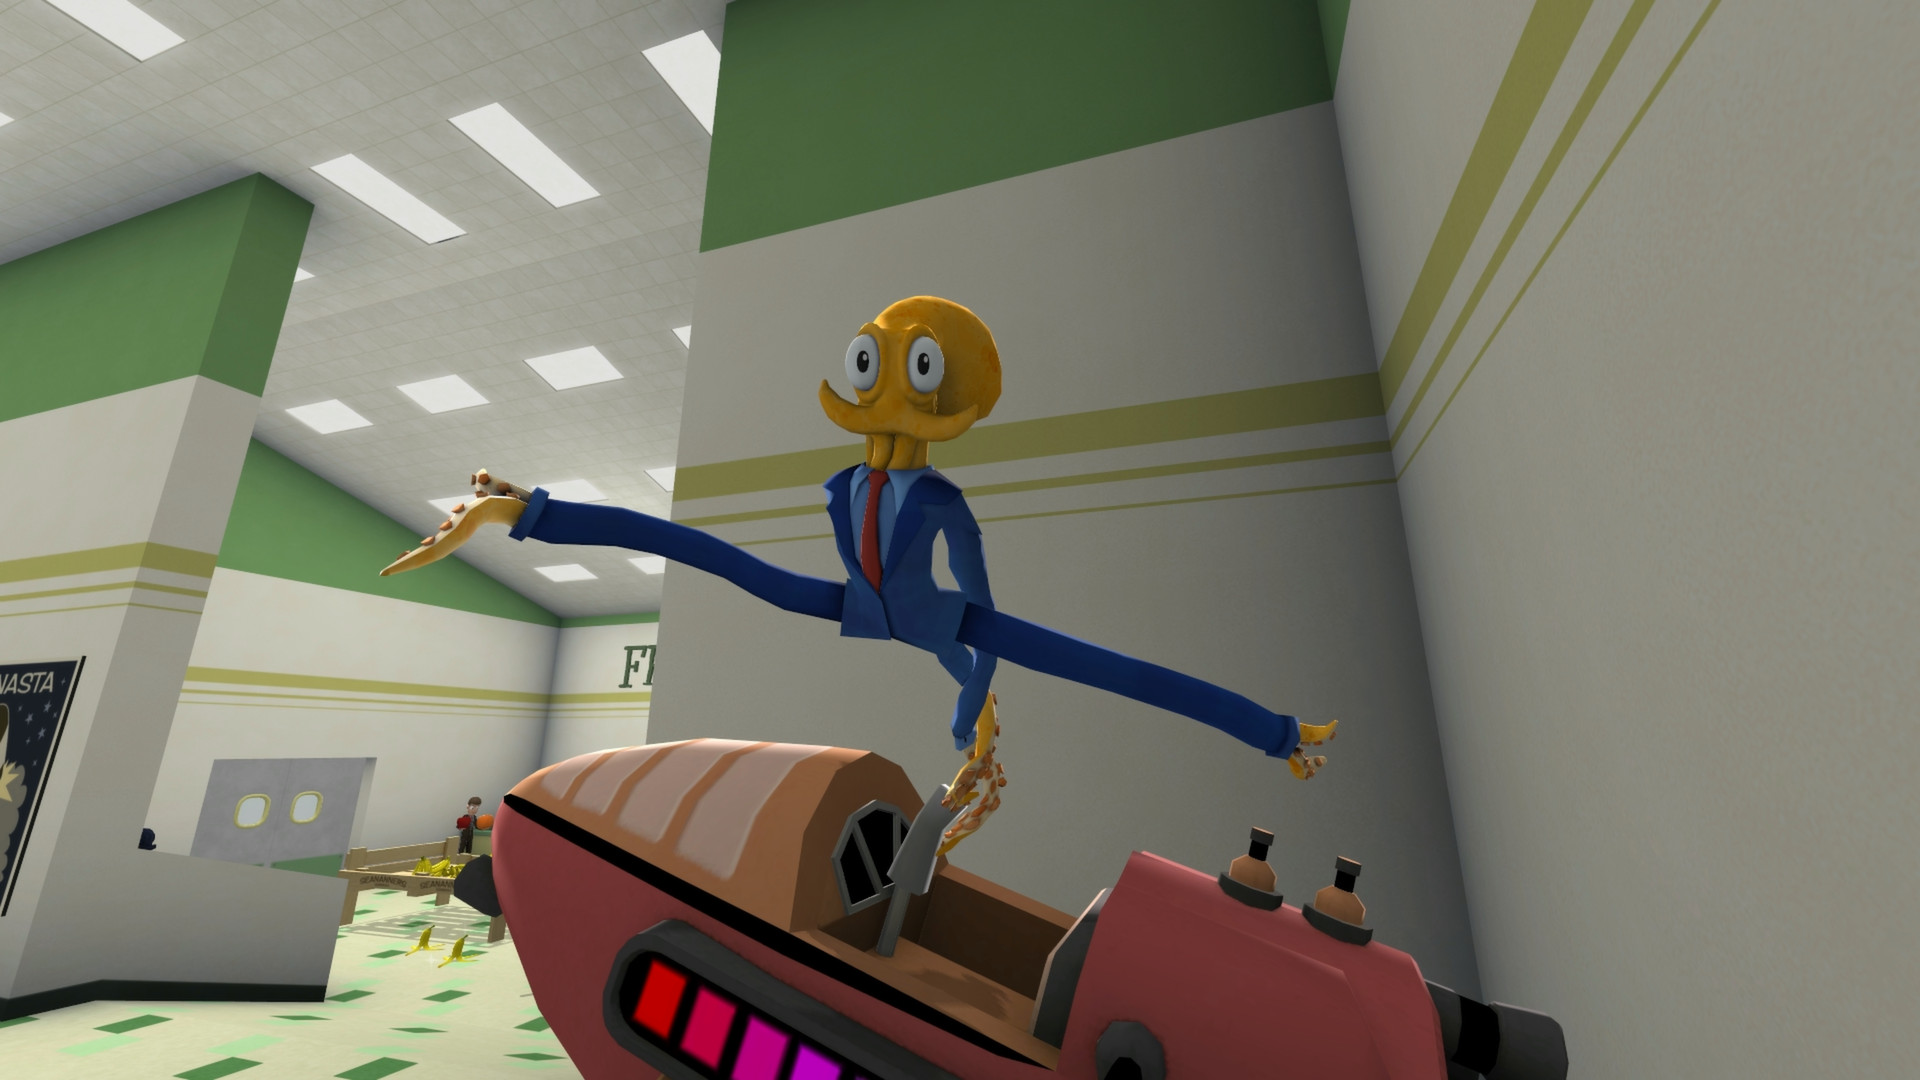 At a Glance: Octodad Dadliest Catch